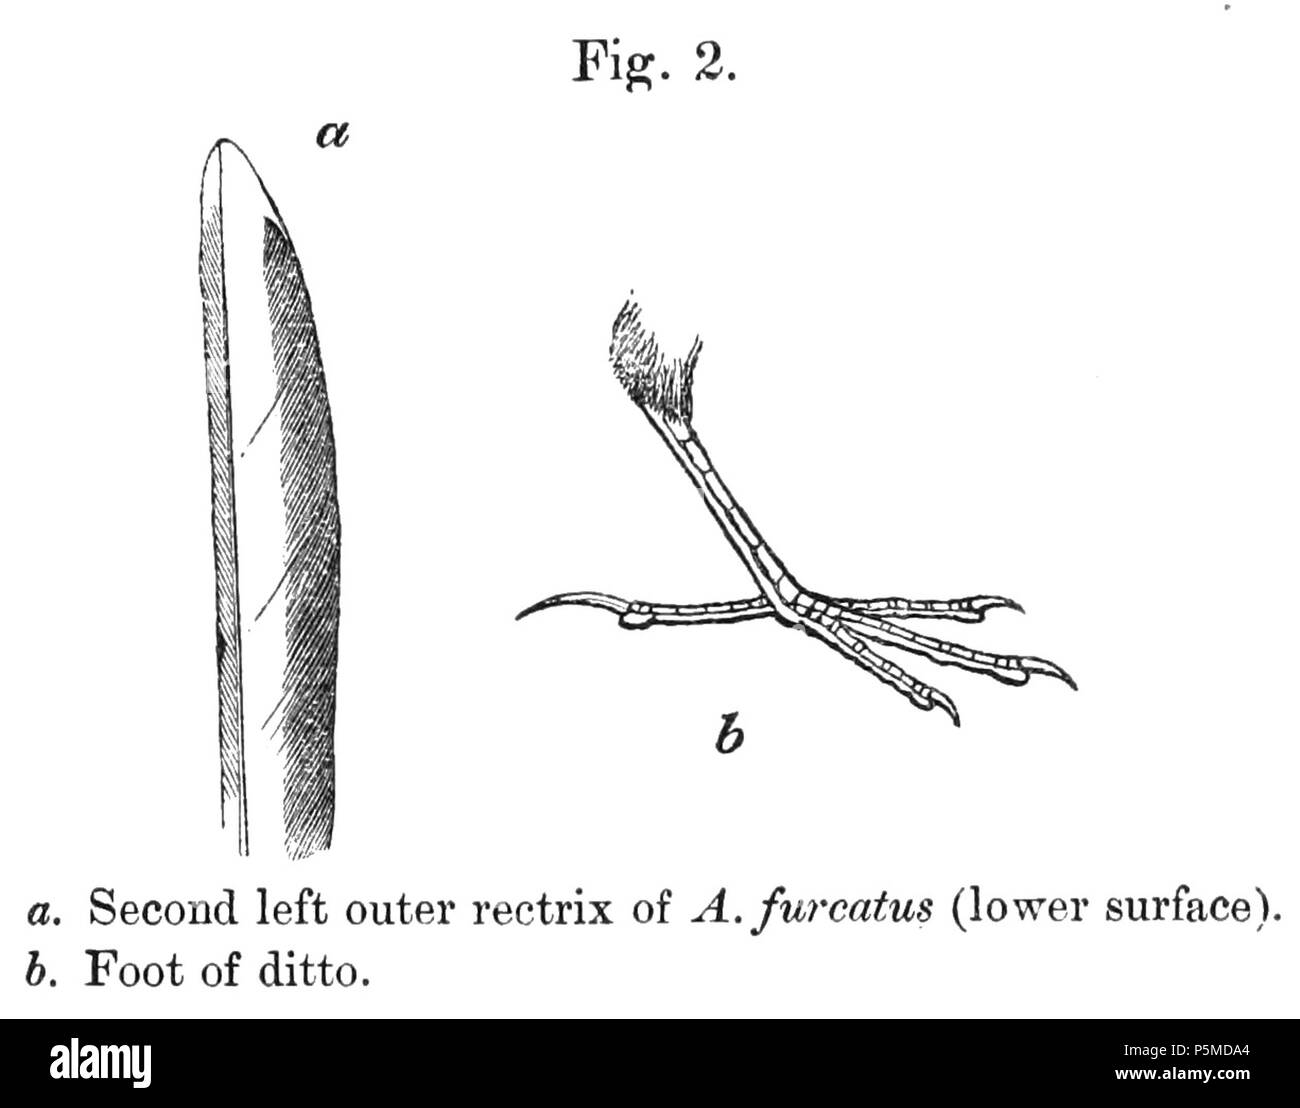 N/A.  English: «Anthus furcatus» = Anthus furcatus (Short-billed Pipit) - second left outer retrix (lower surface) and foot Français: «Anthus furcatus» = Anthus furcatus (Pipit à plastron) - seconde rectrice externe gauche (surface inférieure) et patte . 1878.   Philip Sclater (1829–1913)   Alternative names Philip Lutley Sclater; Sclater; P. L. Sclater  Description British lawyer and zoologist  Date of birth/death 4 November 1829 27 June 1913  Location of birth/death Tangier Park in Hampshire Odiham  Authority control  : Q435725 VIAF:44414898 ISNI:0000 0001 2130 4554 LCCN:n85085981 NL - Stock Image